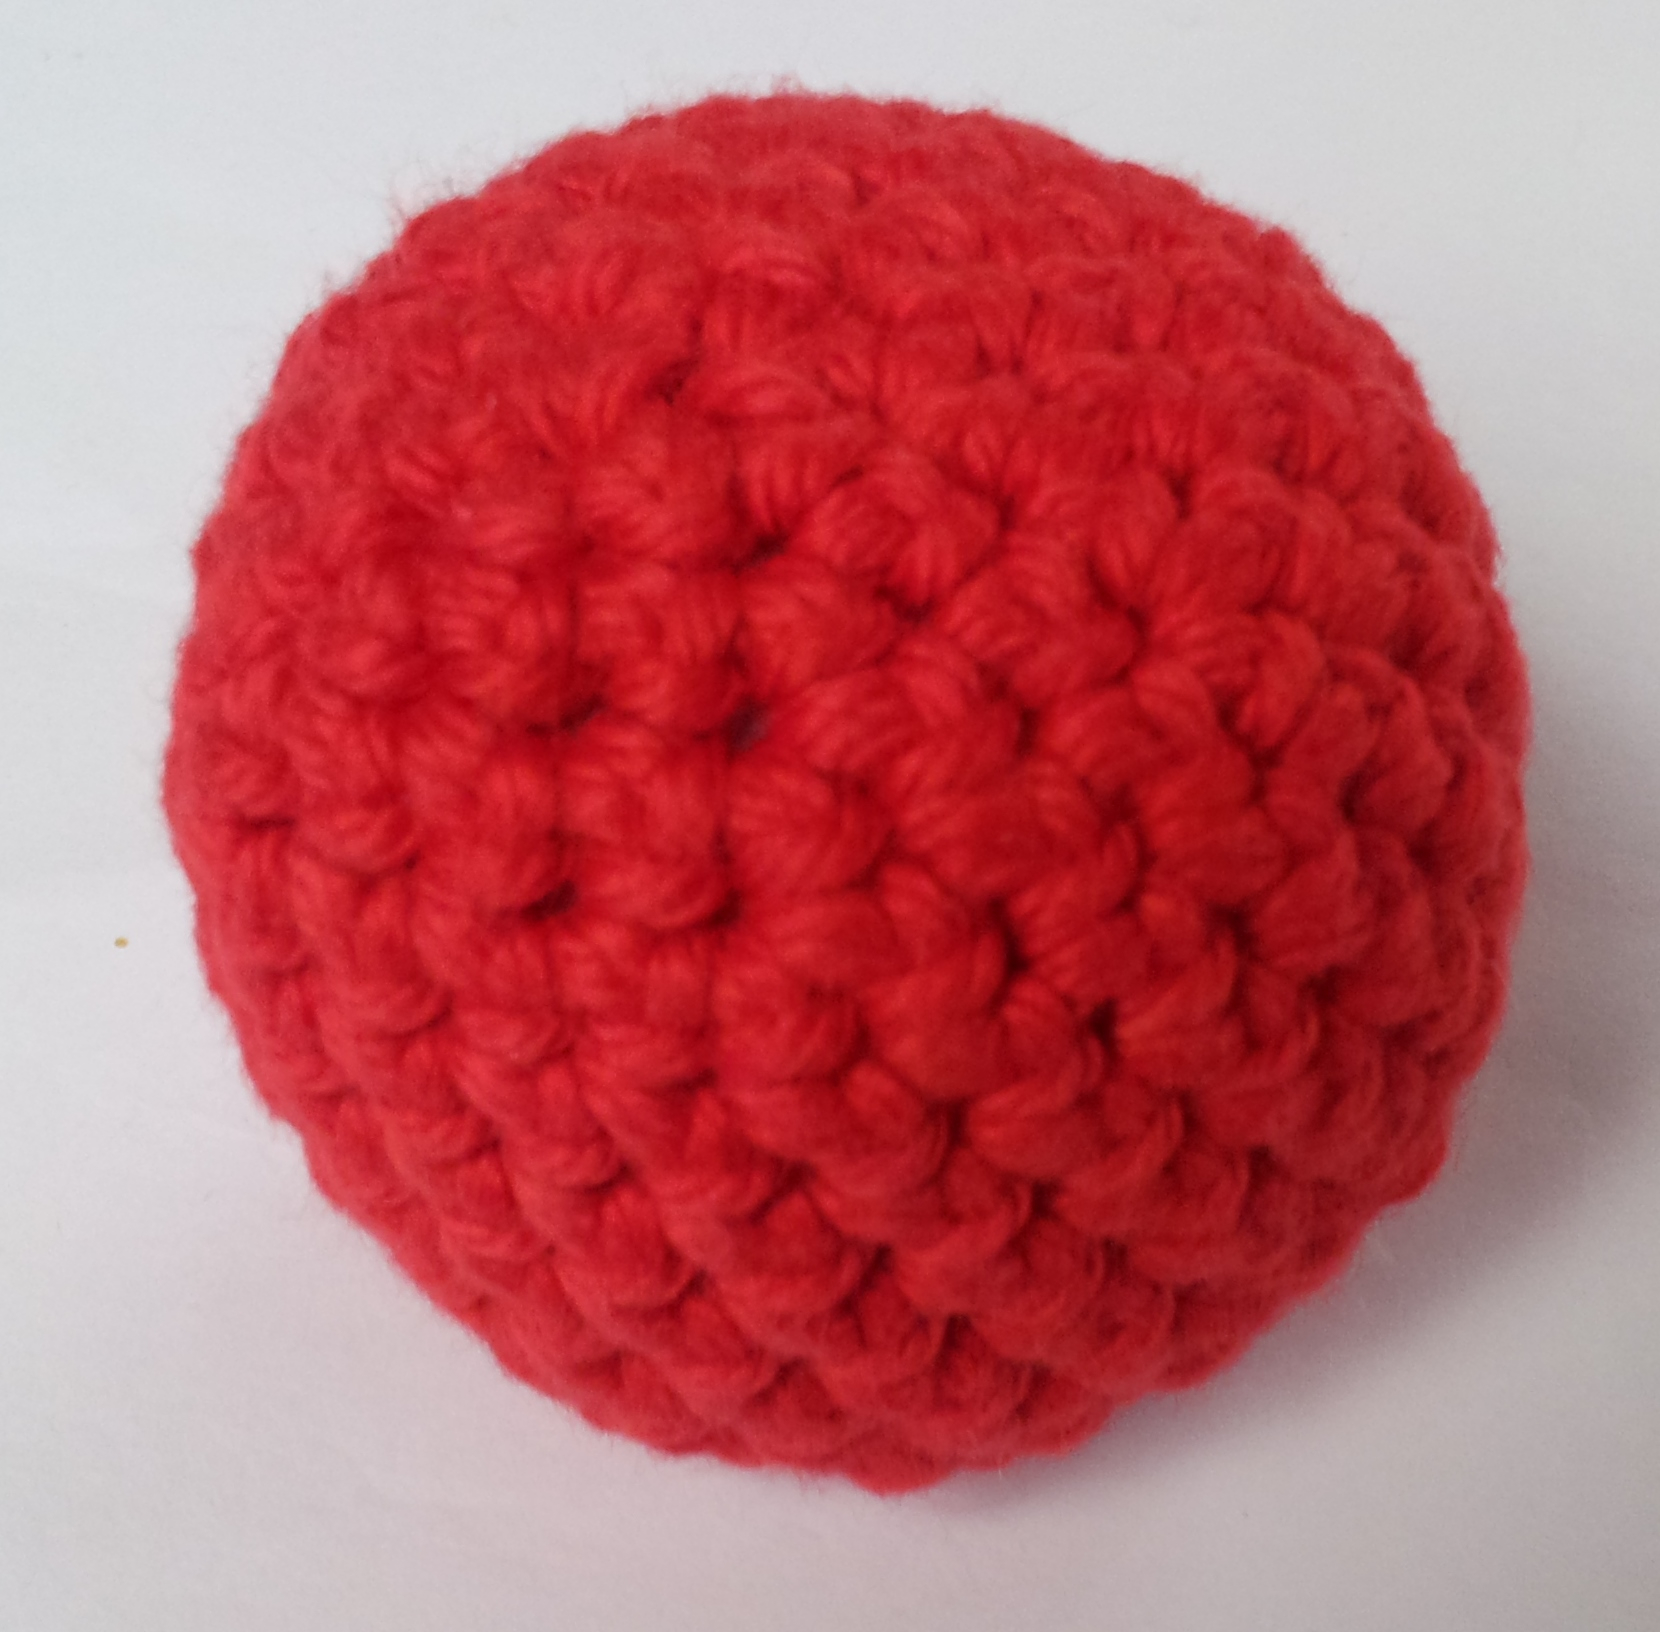 Crochet Sphere How To Make Christmas Crochet Wreath Quick And Easy Thestitchsharer